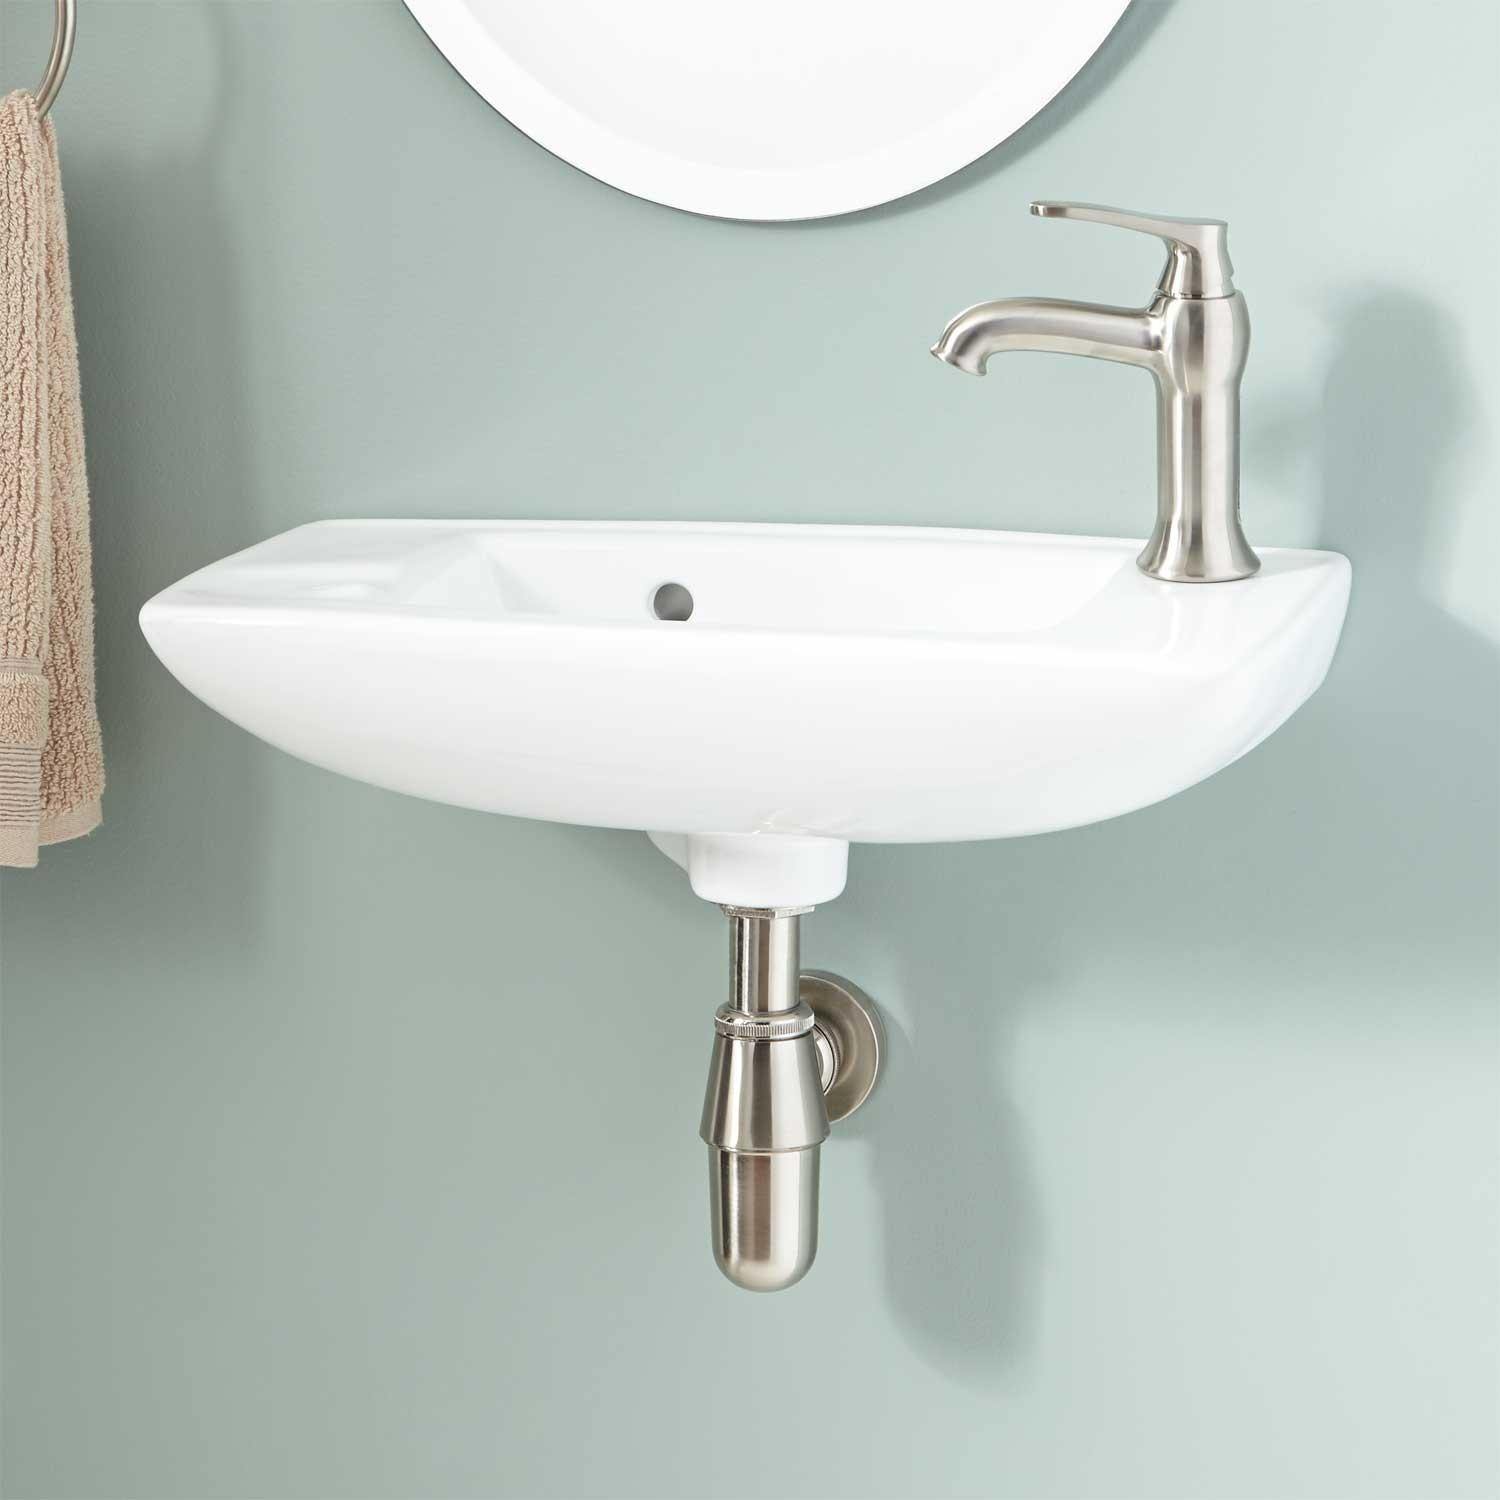 Belvidere Porcelain Wall Mount Bathroom Sink